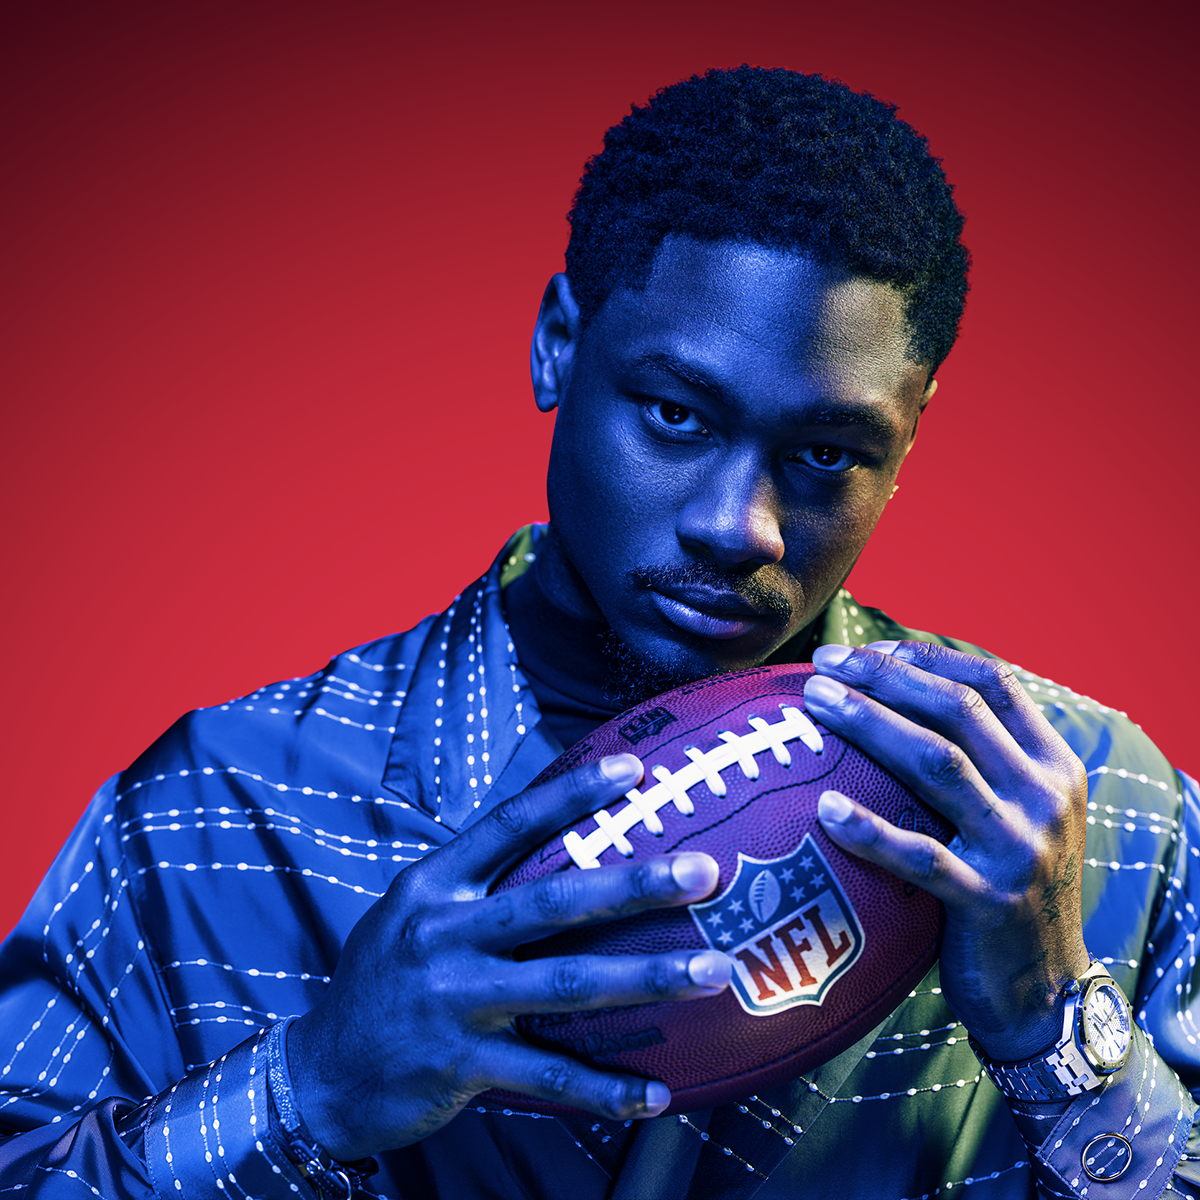 Stefon Diggs holding a football against a red background.